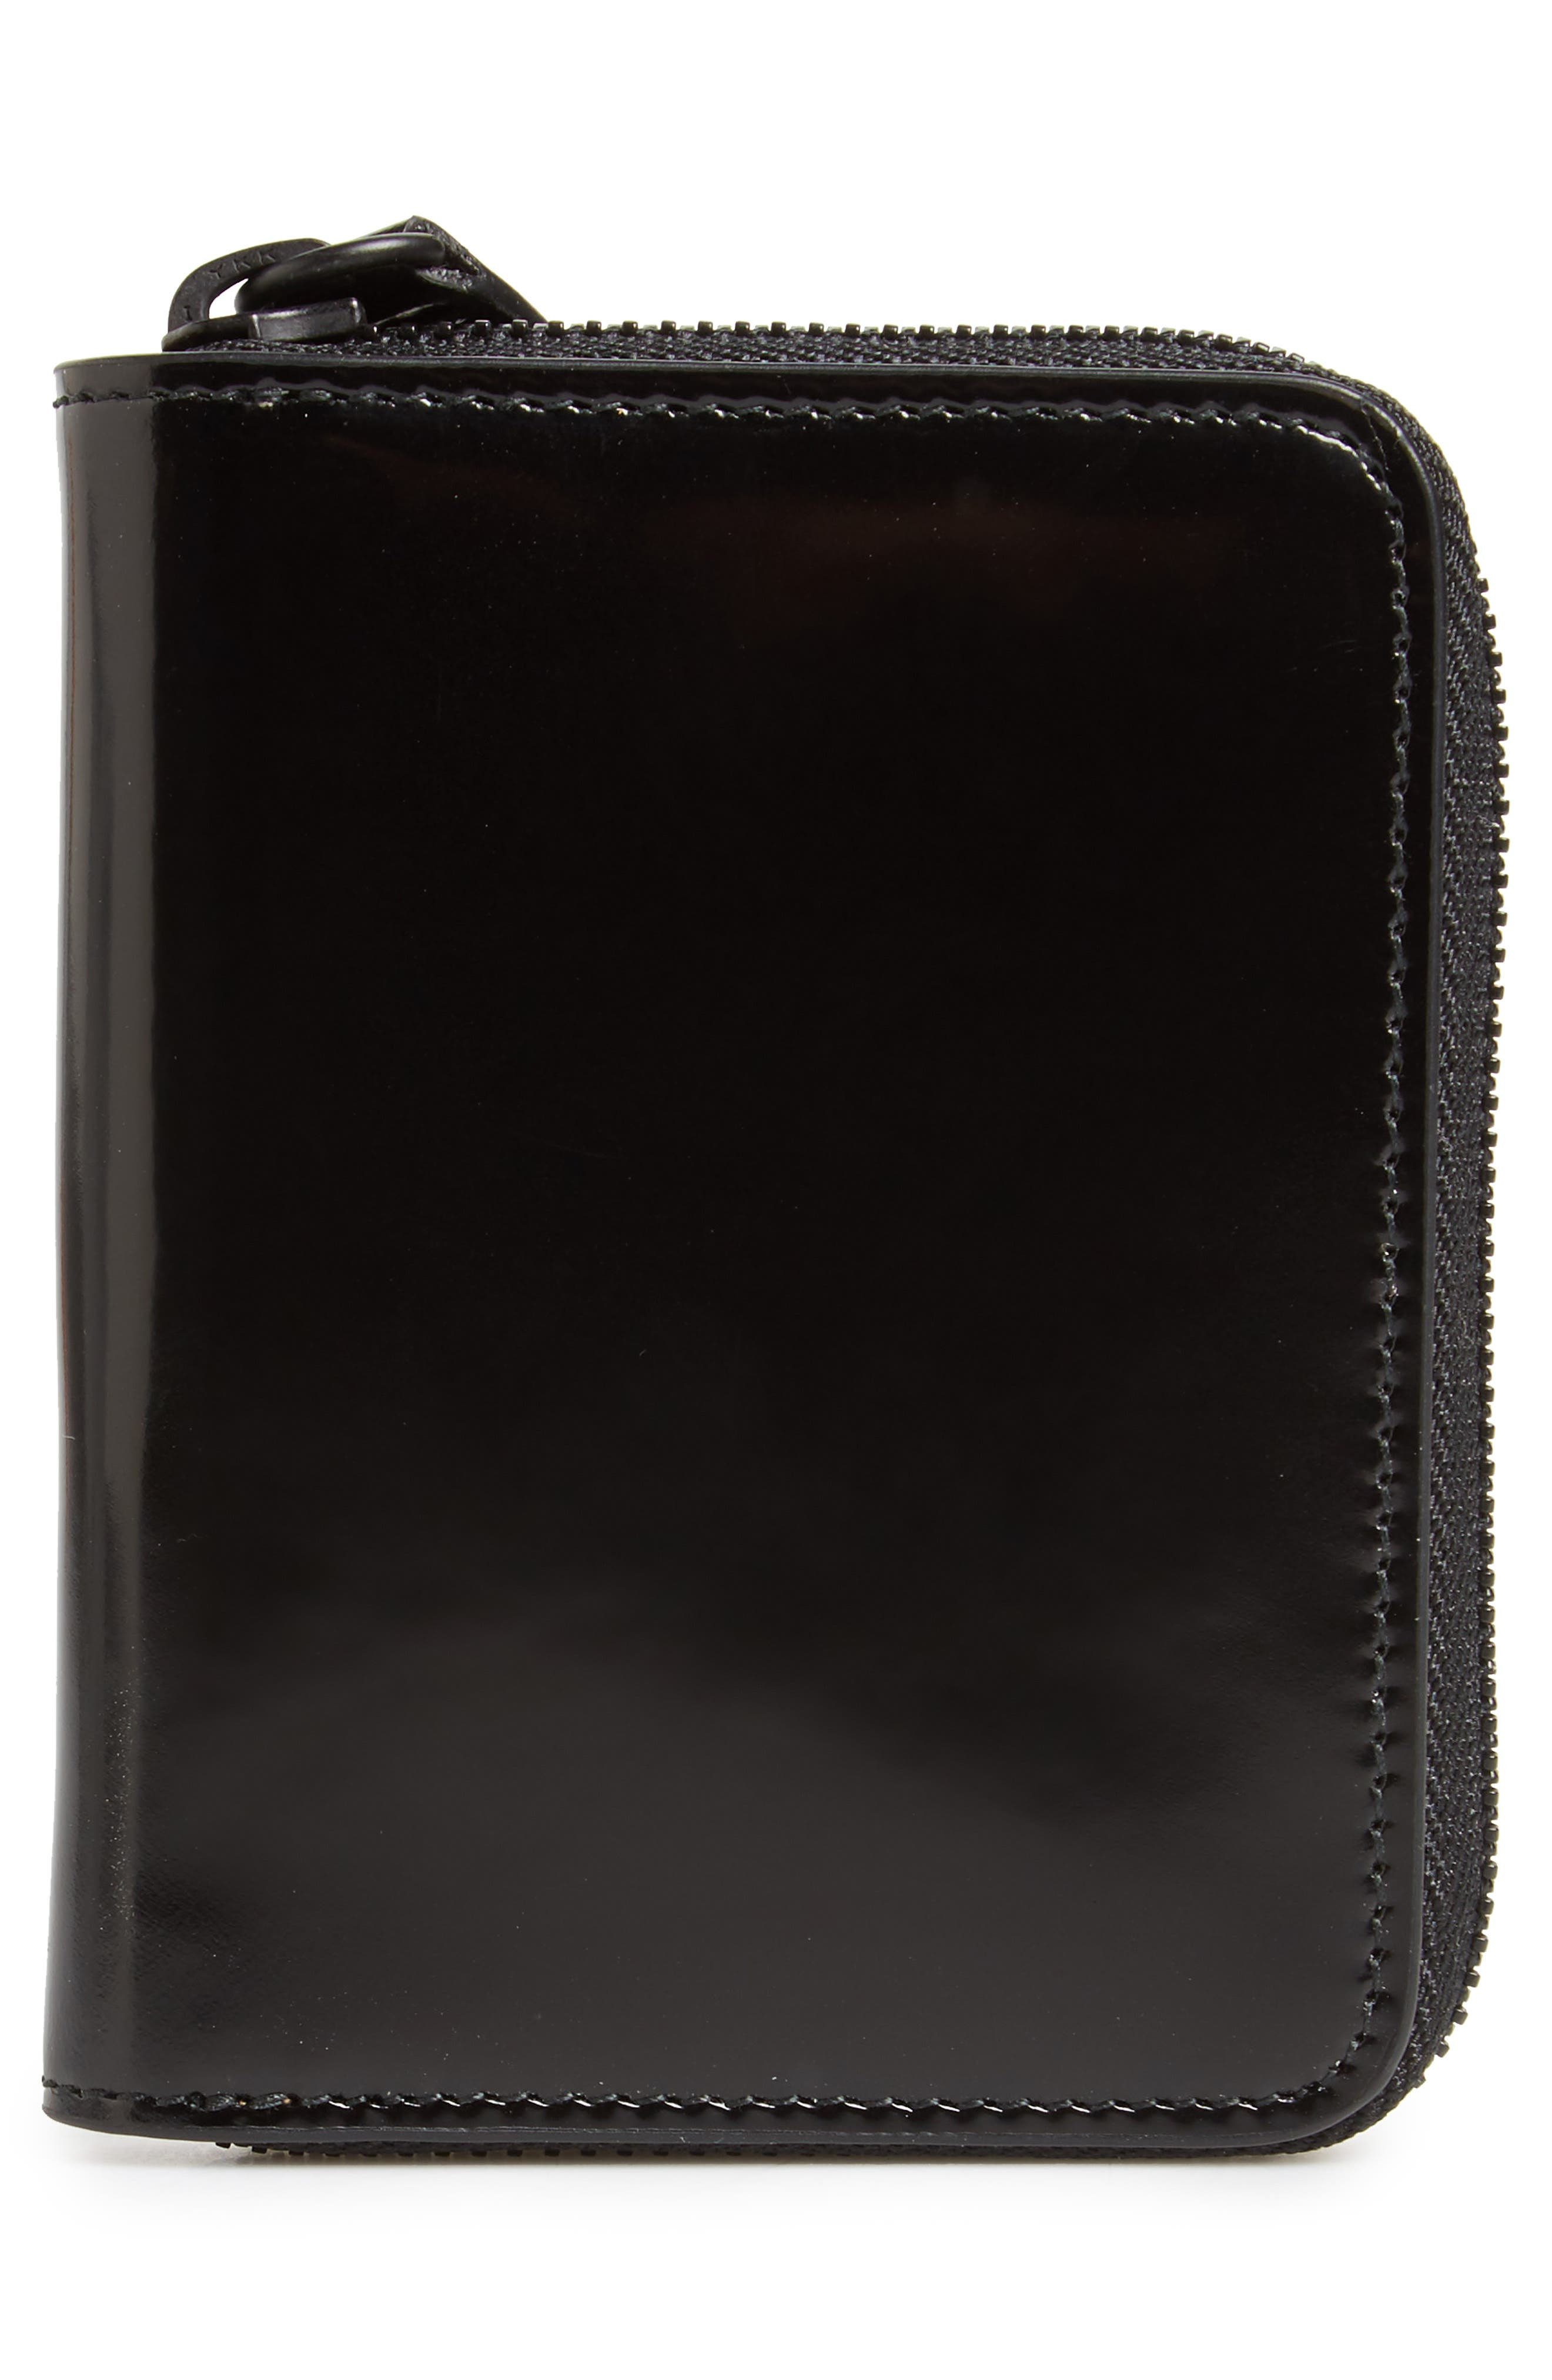 Patent Leather Zip Wallet,                             Alternate thumbnail 3, color,                             001